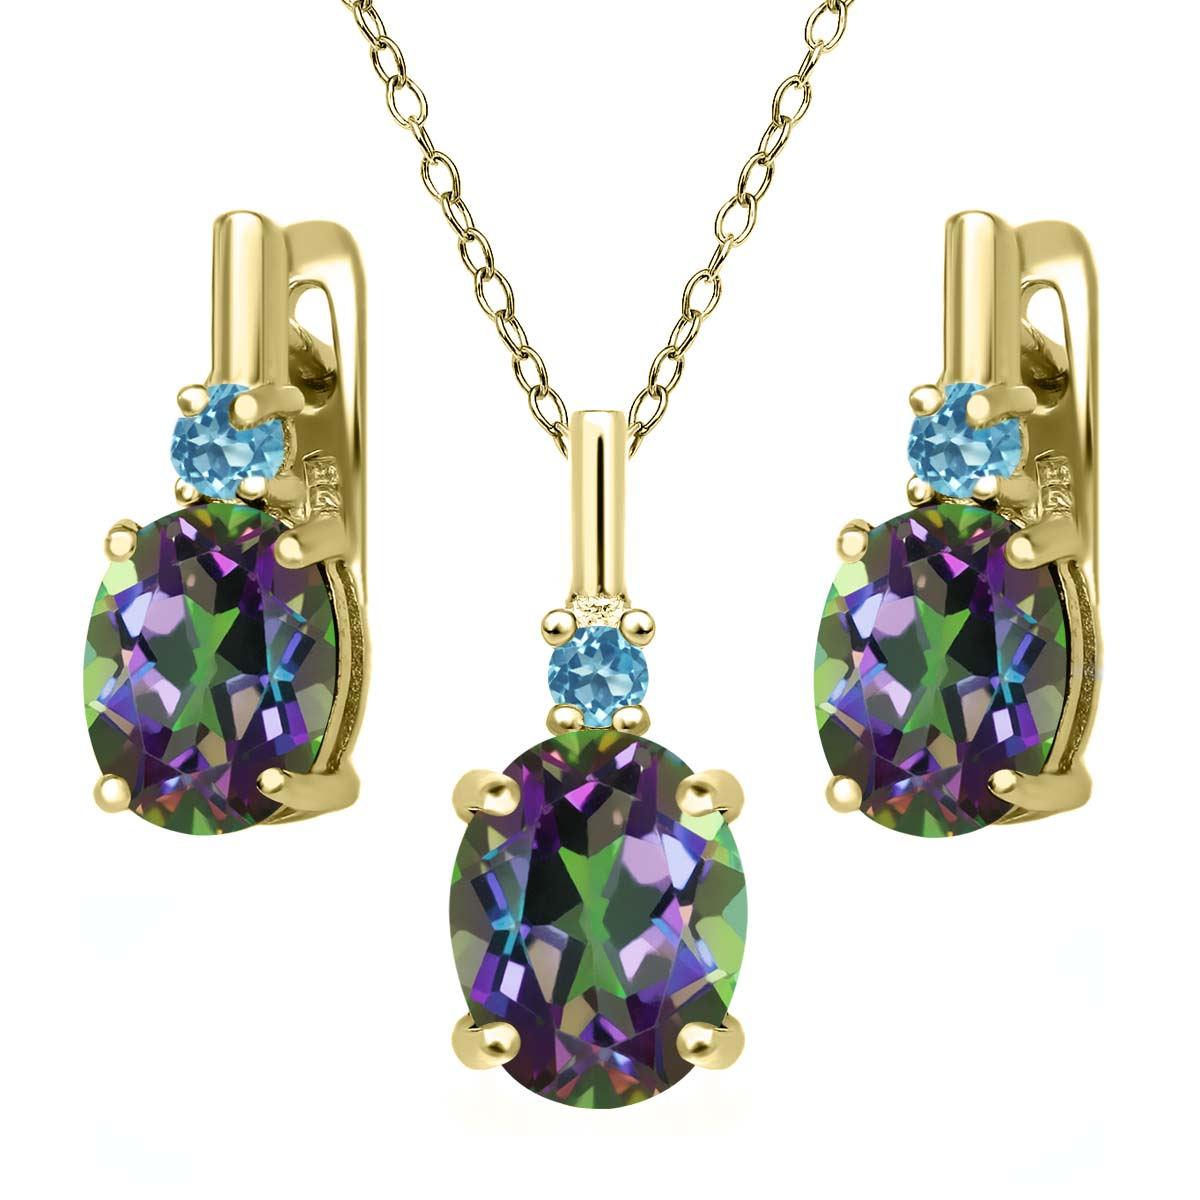 6.98 Ct Green Mystic Topaz 18K Yellow Gold Plated Silver Pendant Earrings Set by